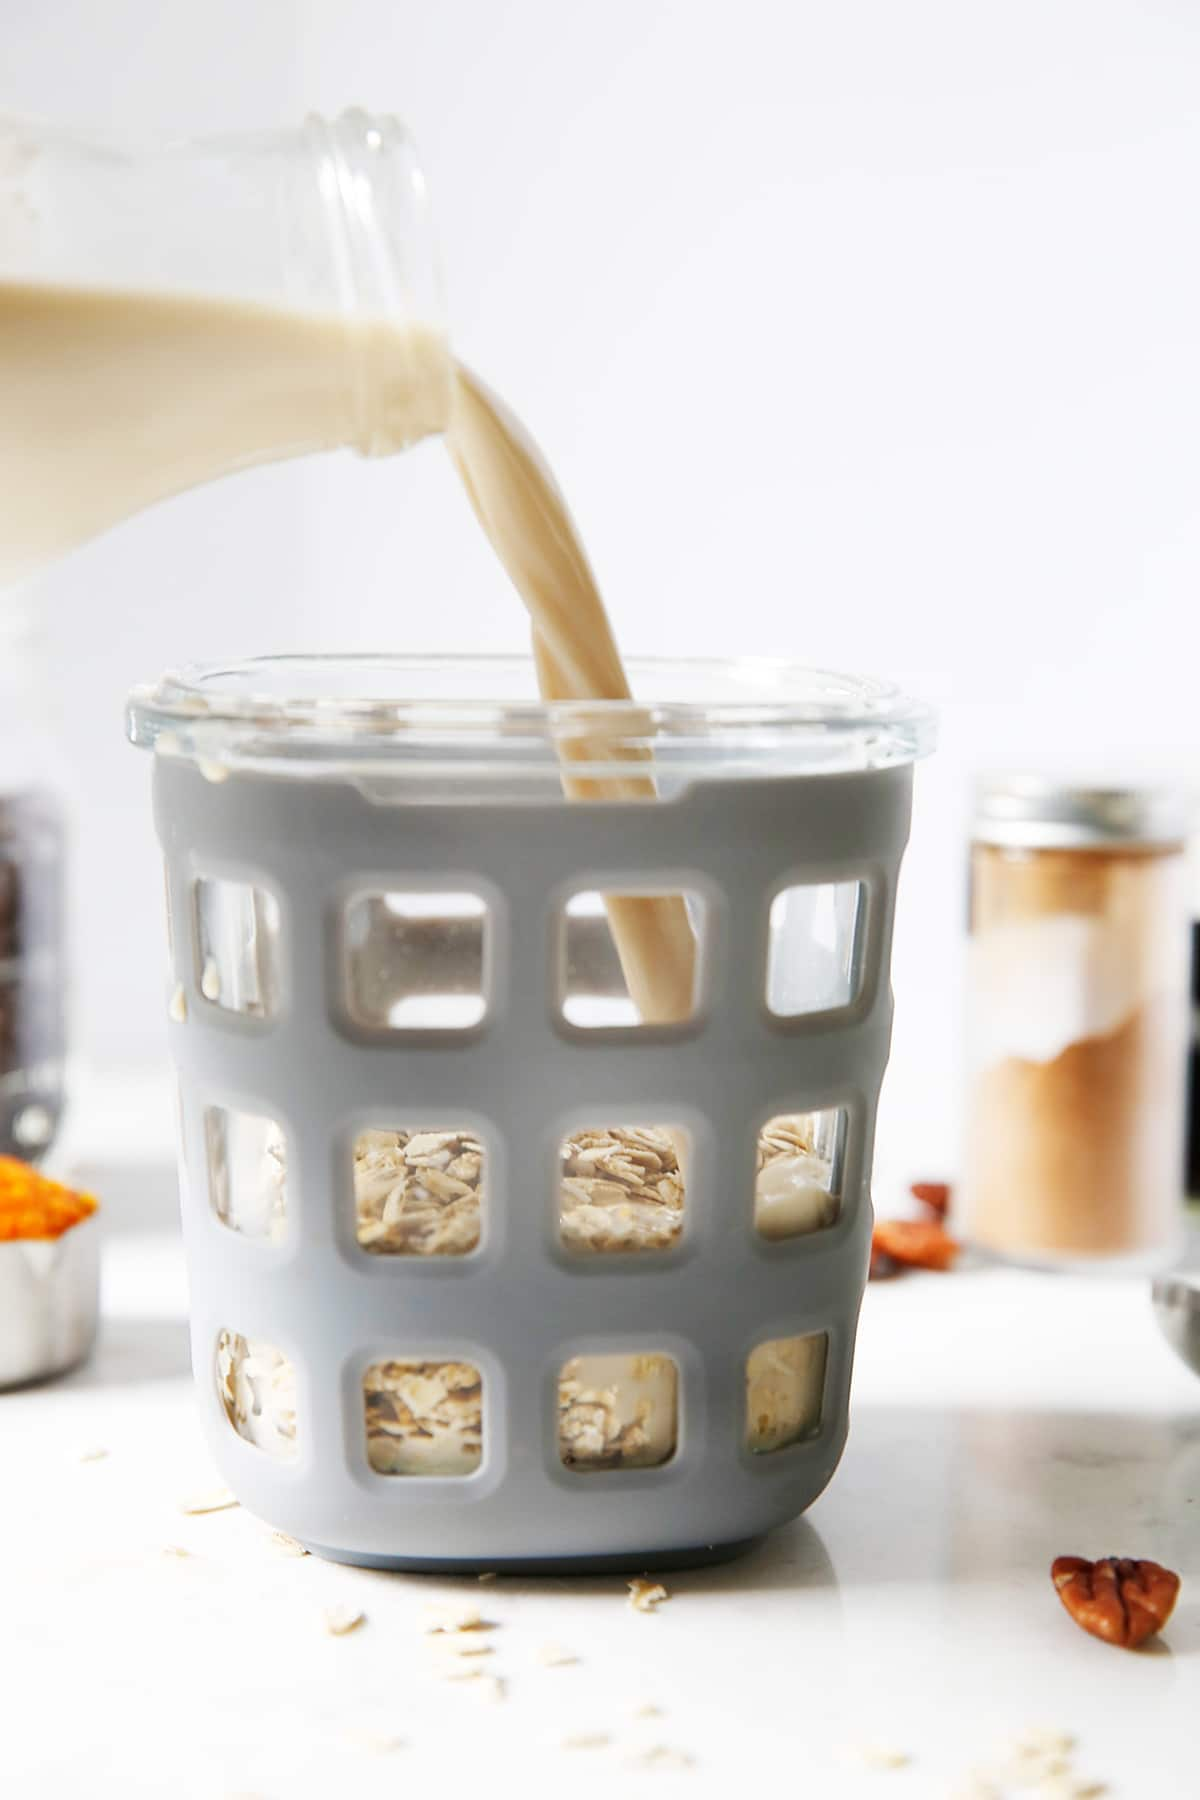 Pouring milk into overnight oats.